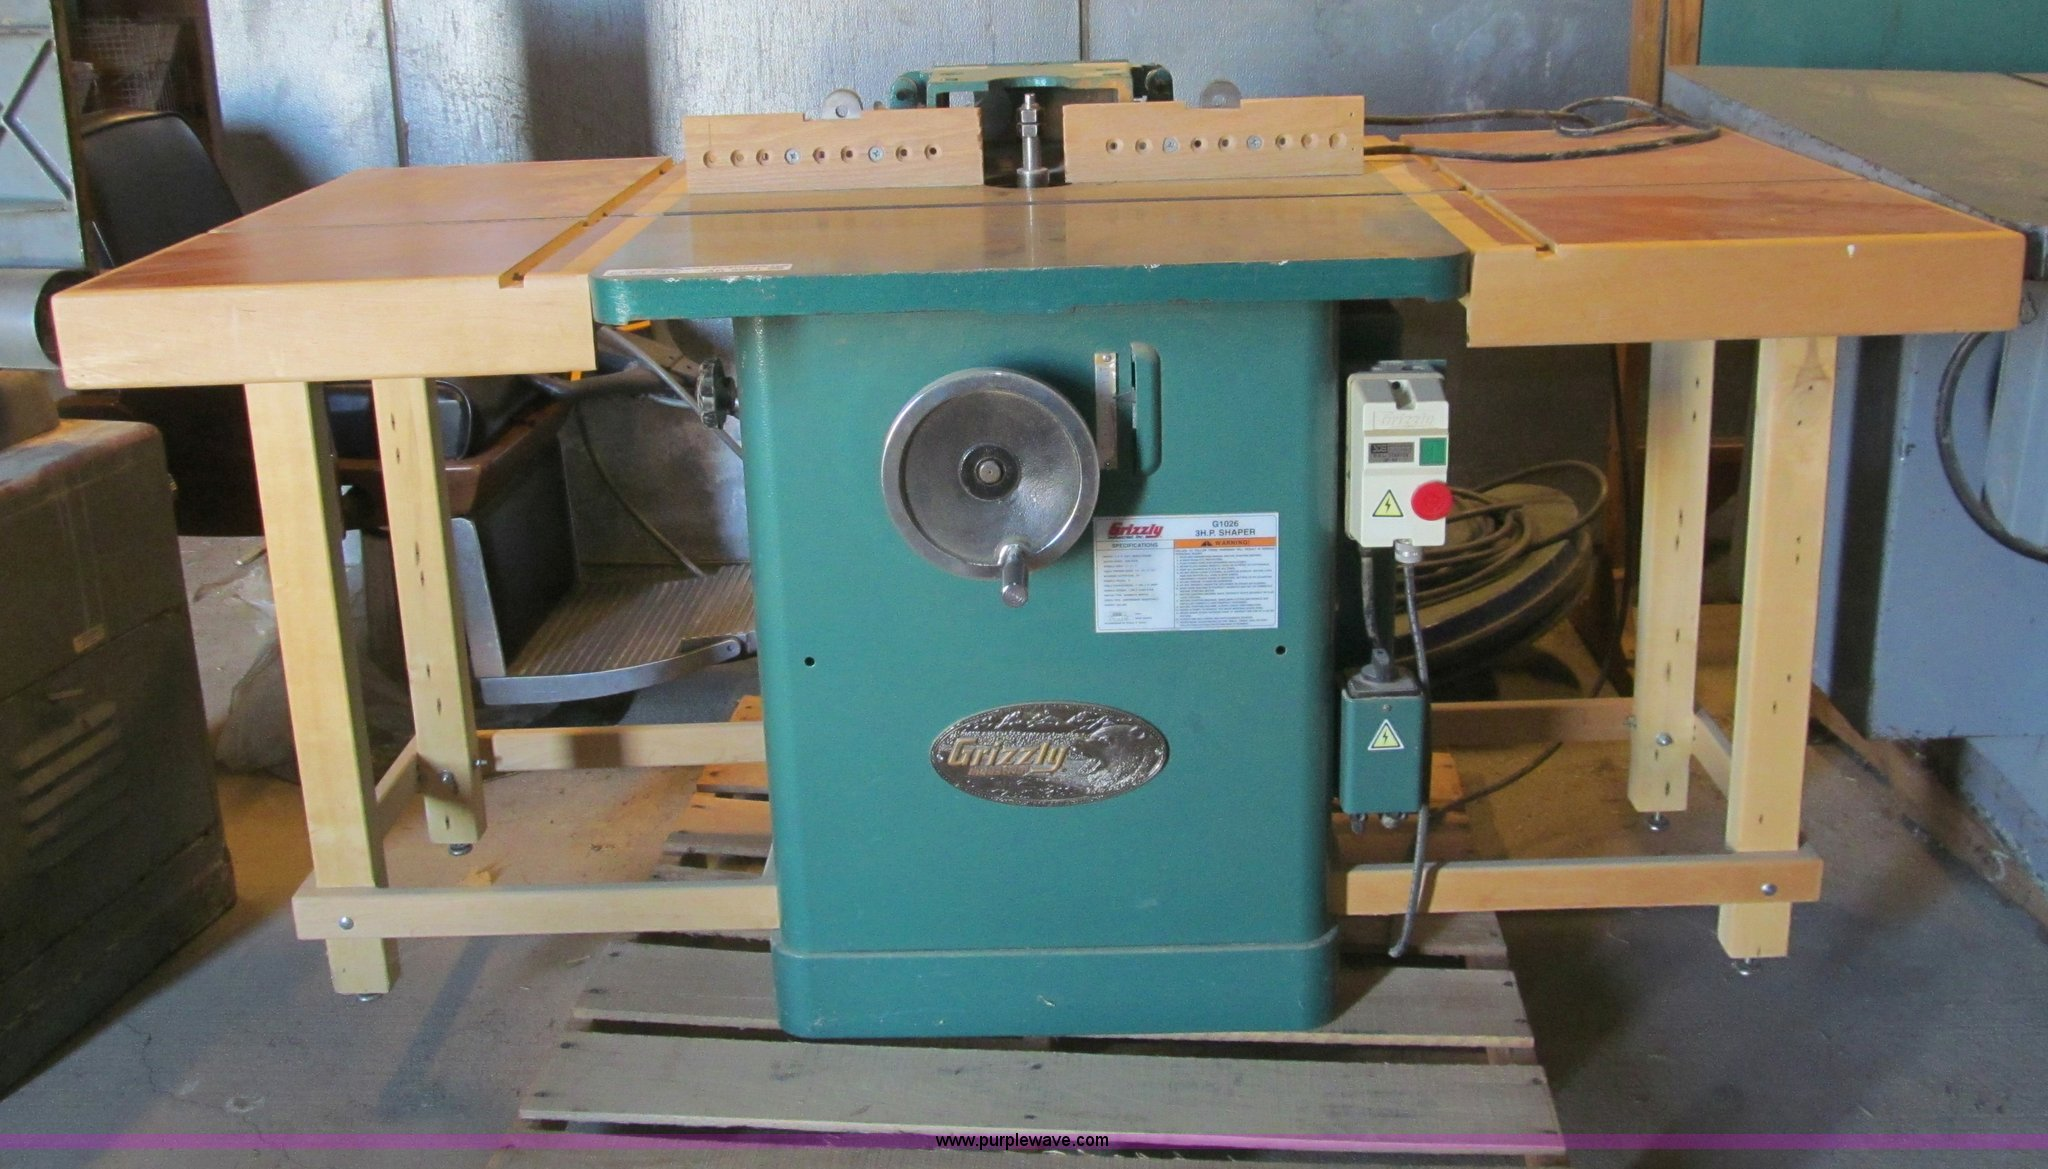 2006 grizzly g1026 3hp shaper item ar9021 sold march 4 rh purplewave com